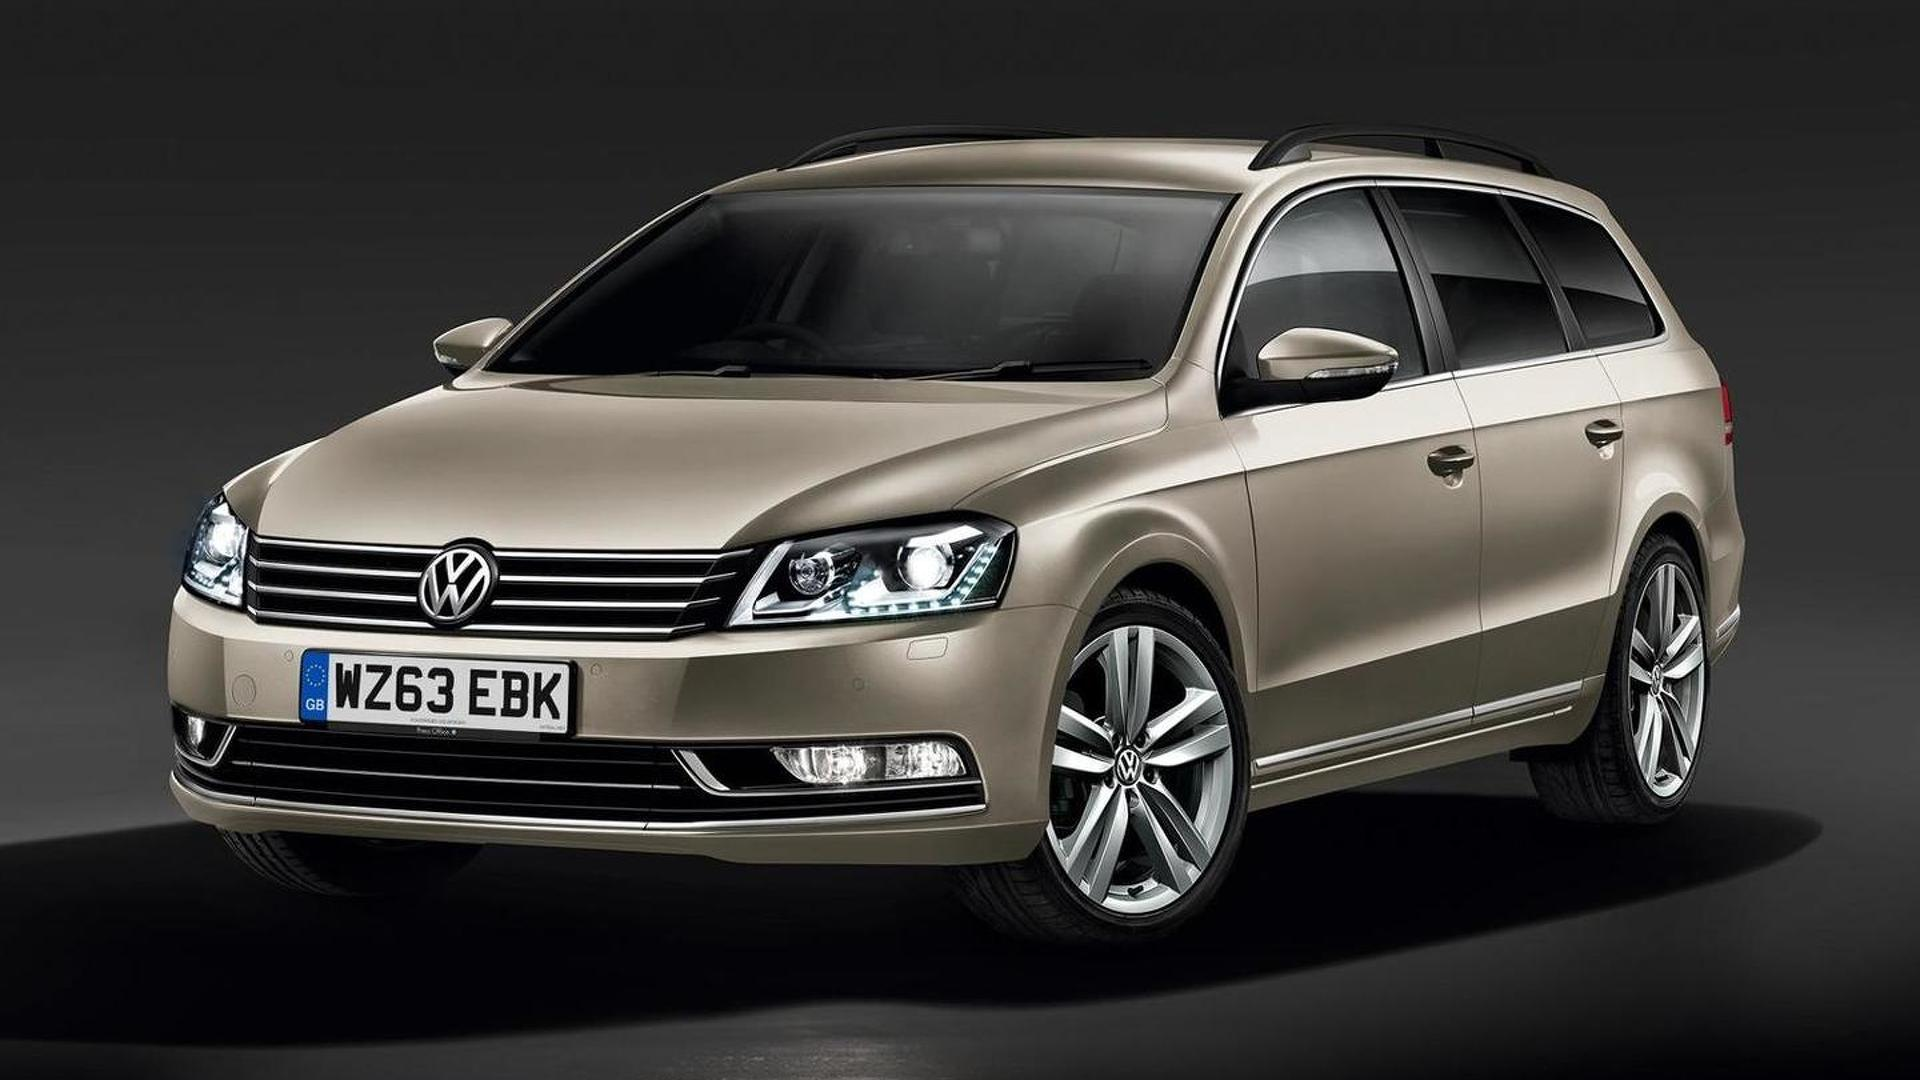 More premium Volkswagen Passat Executive and Executive Style introduced in UK